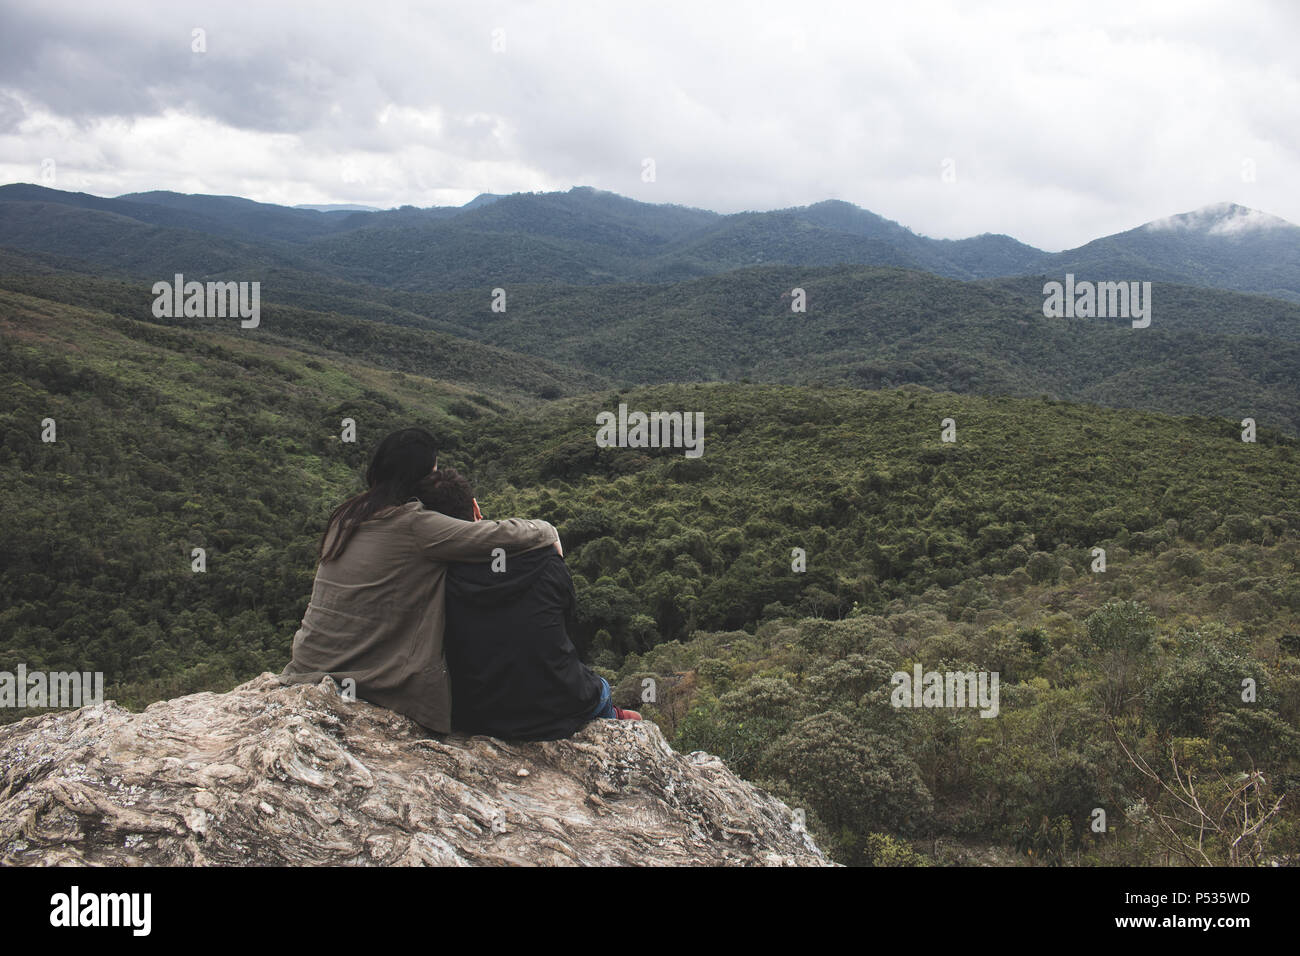 romantic couple sharing complicity with a marvelous mountain view - Stock Image